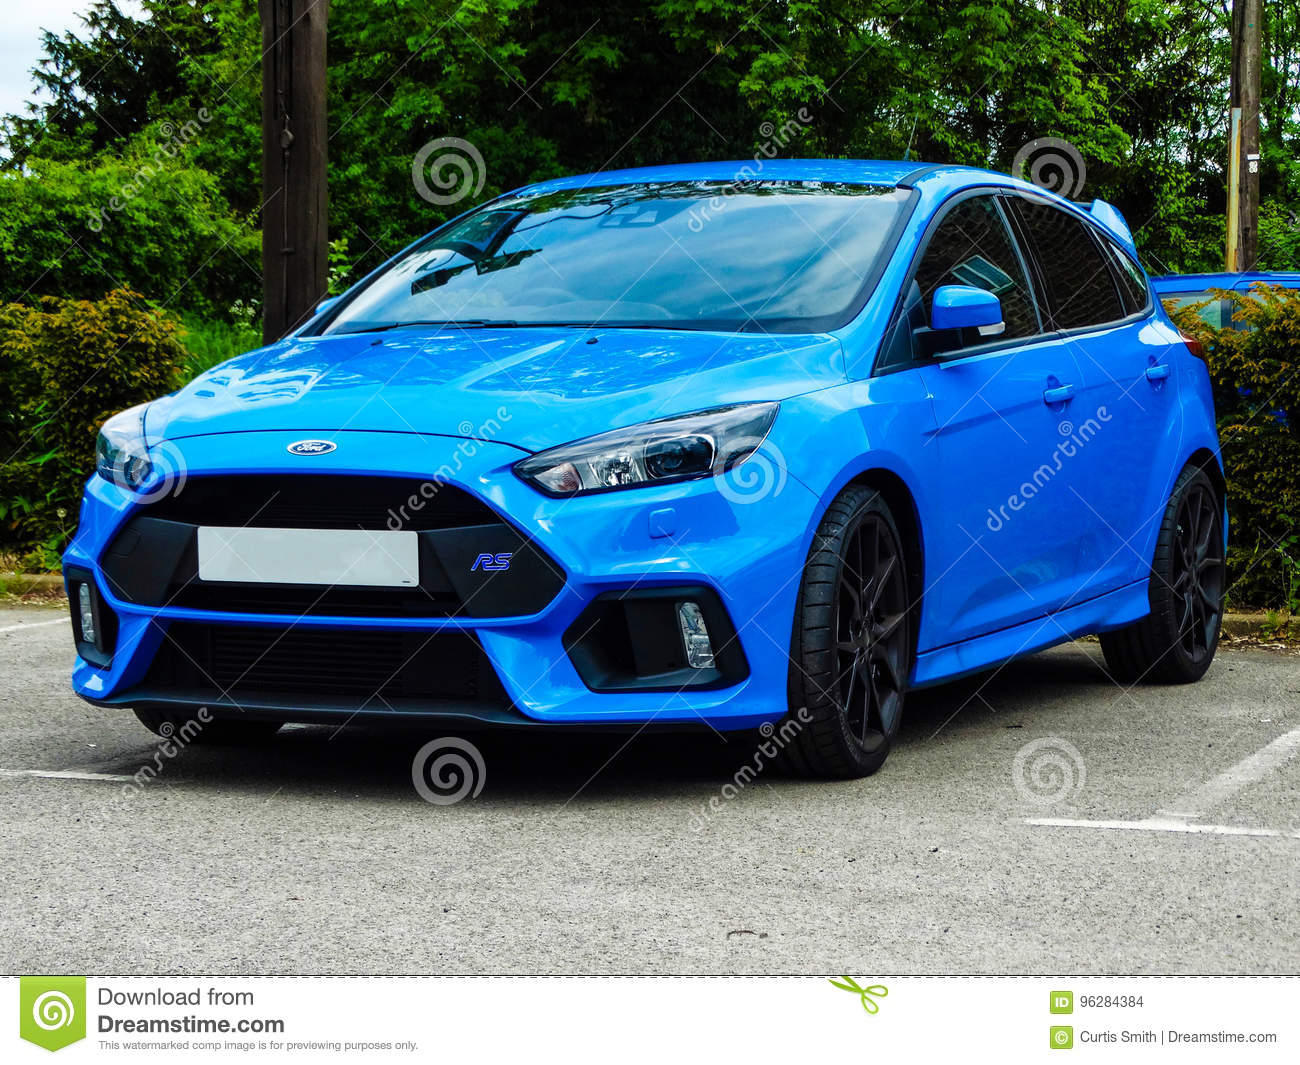 2016 Ford Focus Rs Nitrous Blue Editorial Stock Image Image Of Trademark Focusrs 96284384